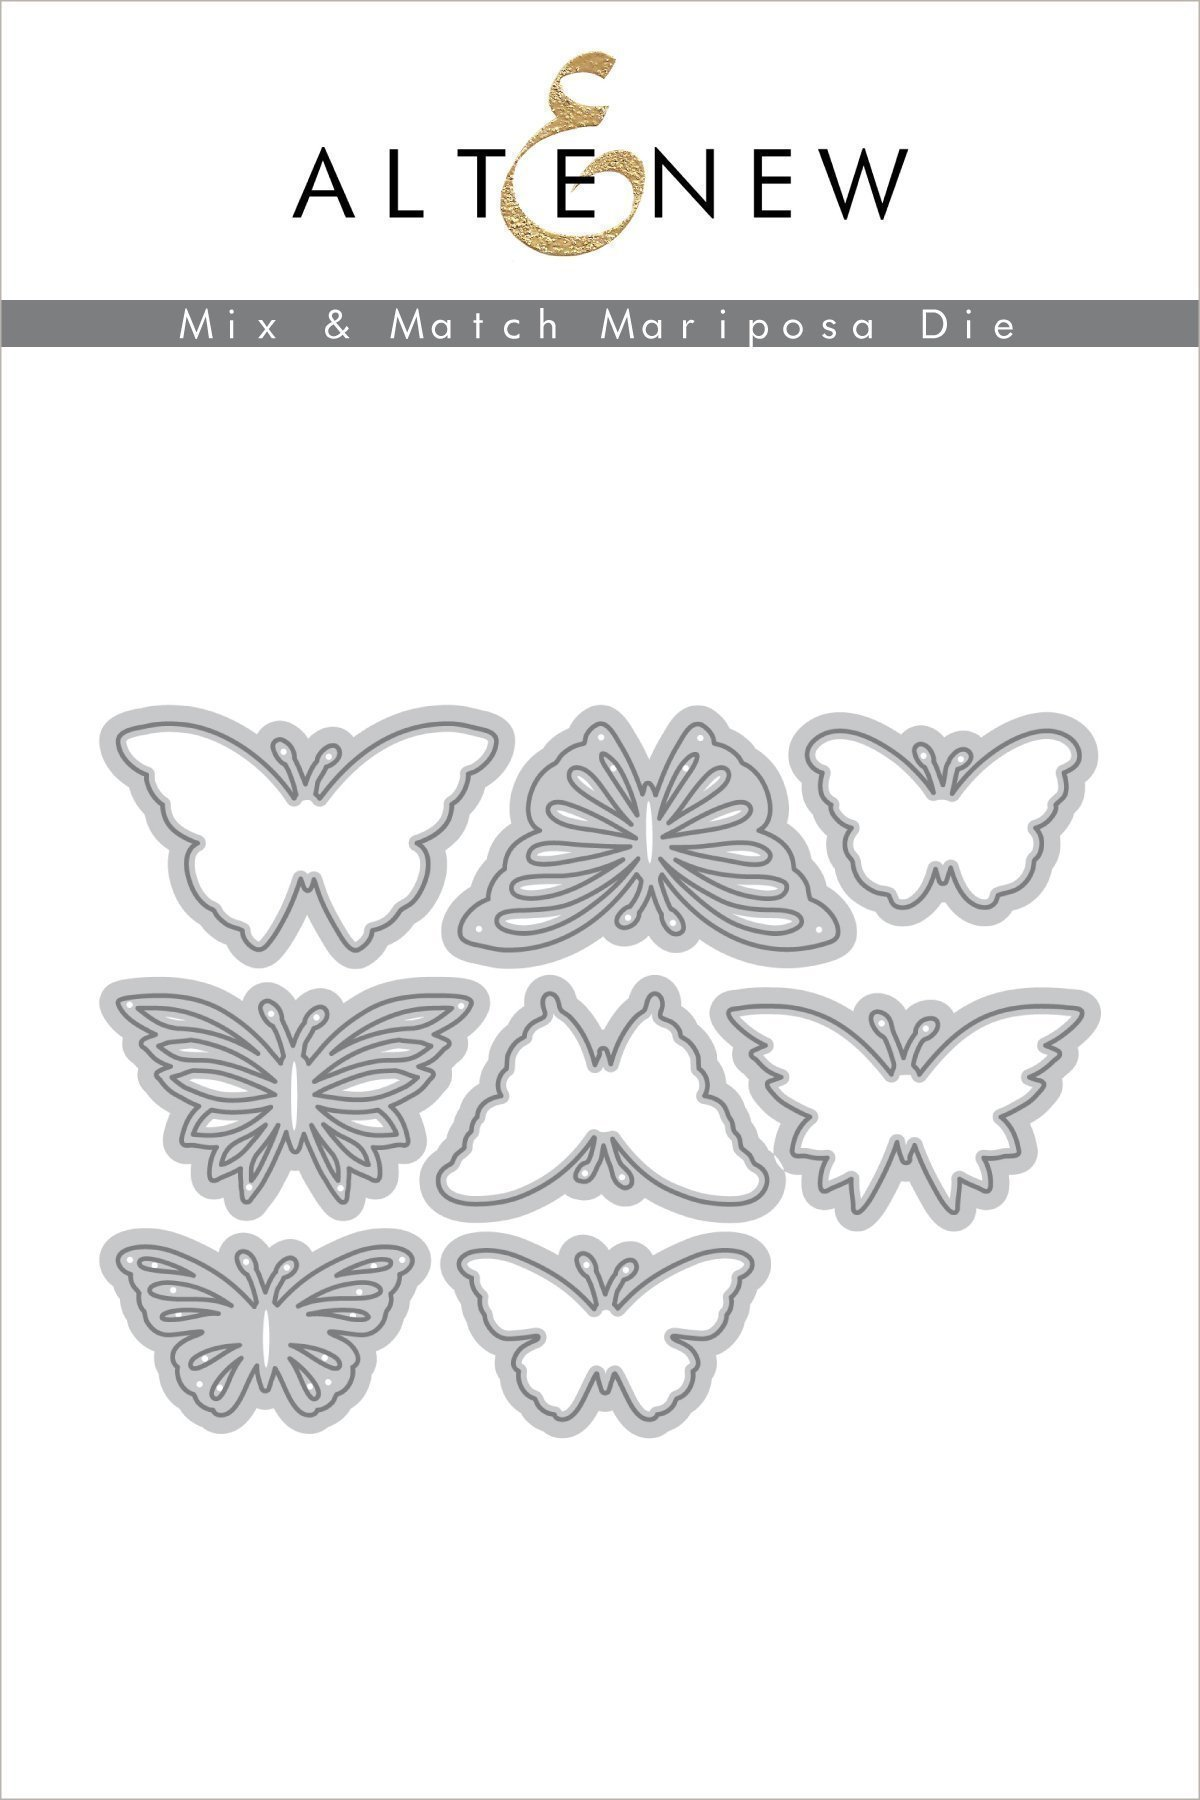 Mix & Match Mariposa Dies